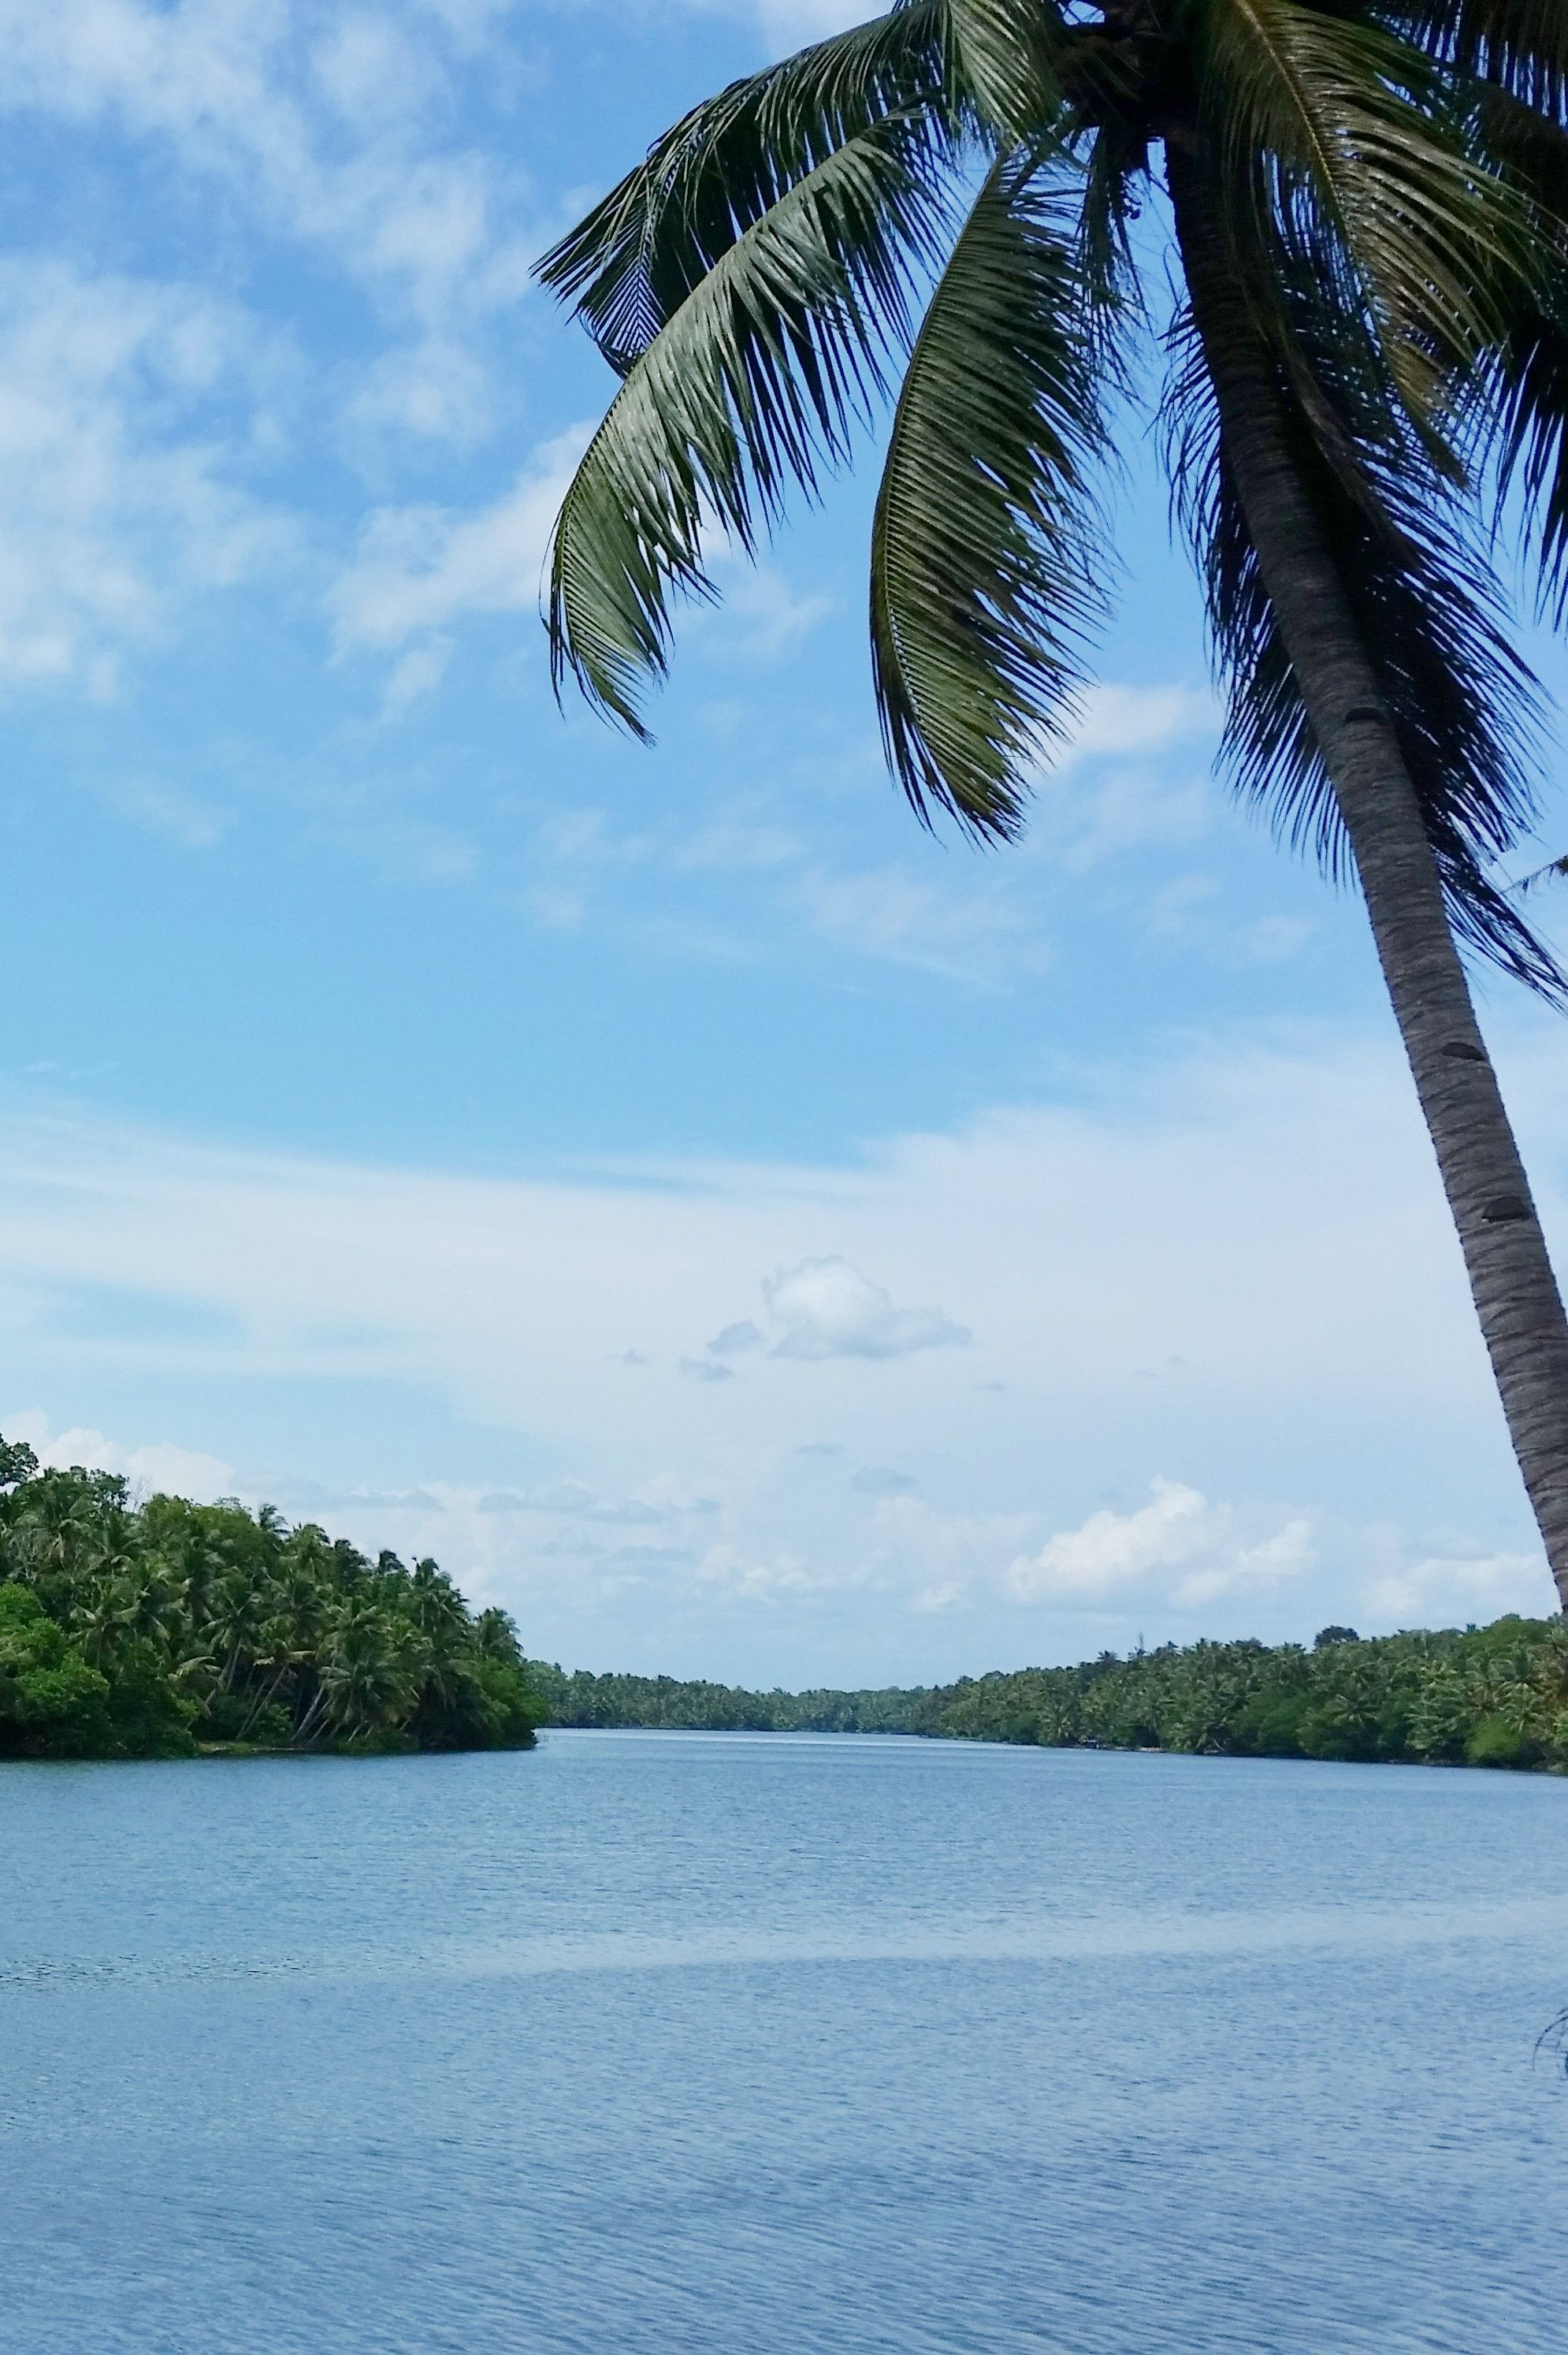 , Places to visit in India backpacking Kerala – munroe island backwaters, My Travels Blog 2020, My Travels Blog 2020